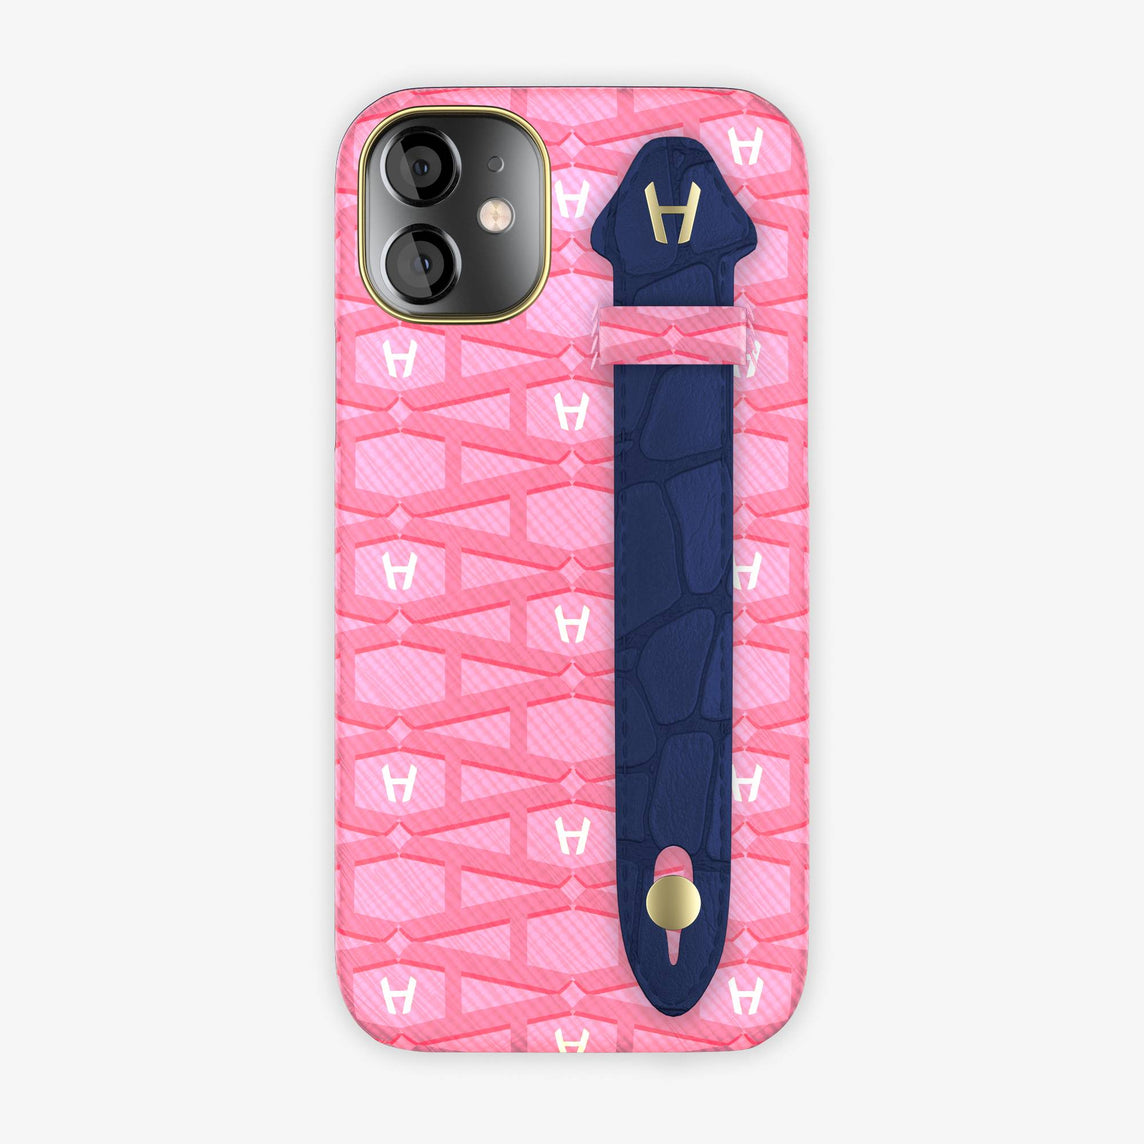 Monogram Side Finger Case iPhone 12 Mini | Pink/Alligator Navy Blue - Yellow-Gold